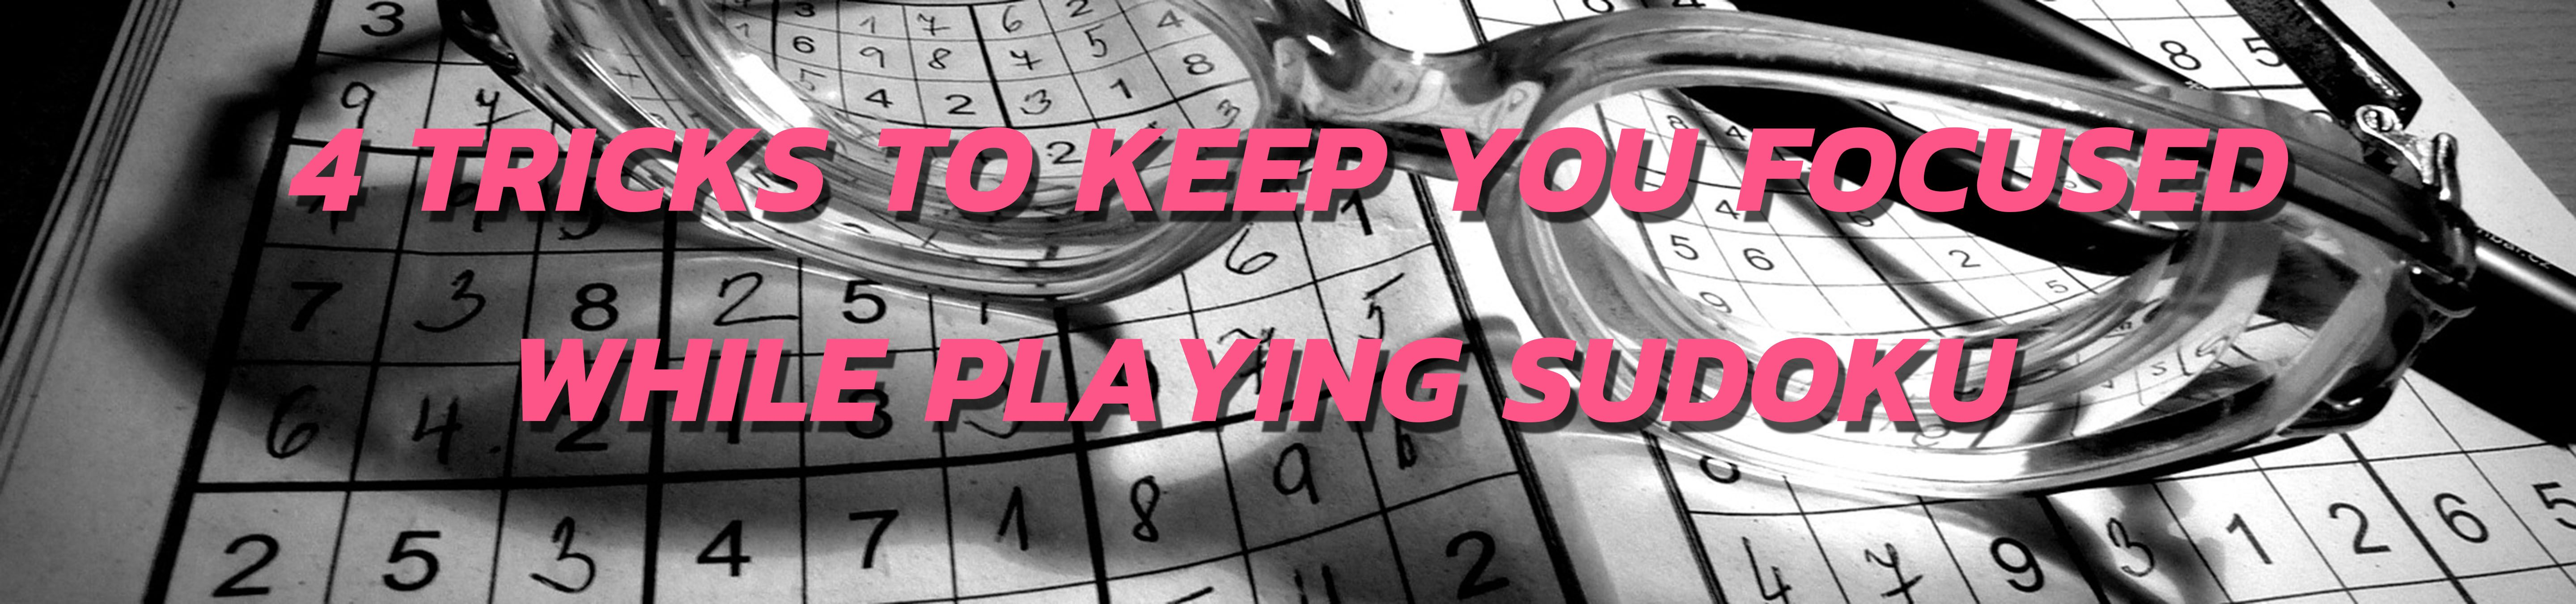 4 Tricks To Keep You Focused While Playing Sudoku INA 2